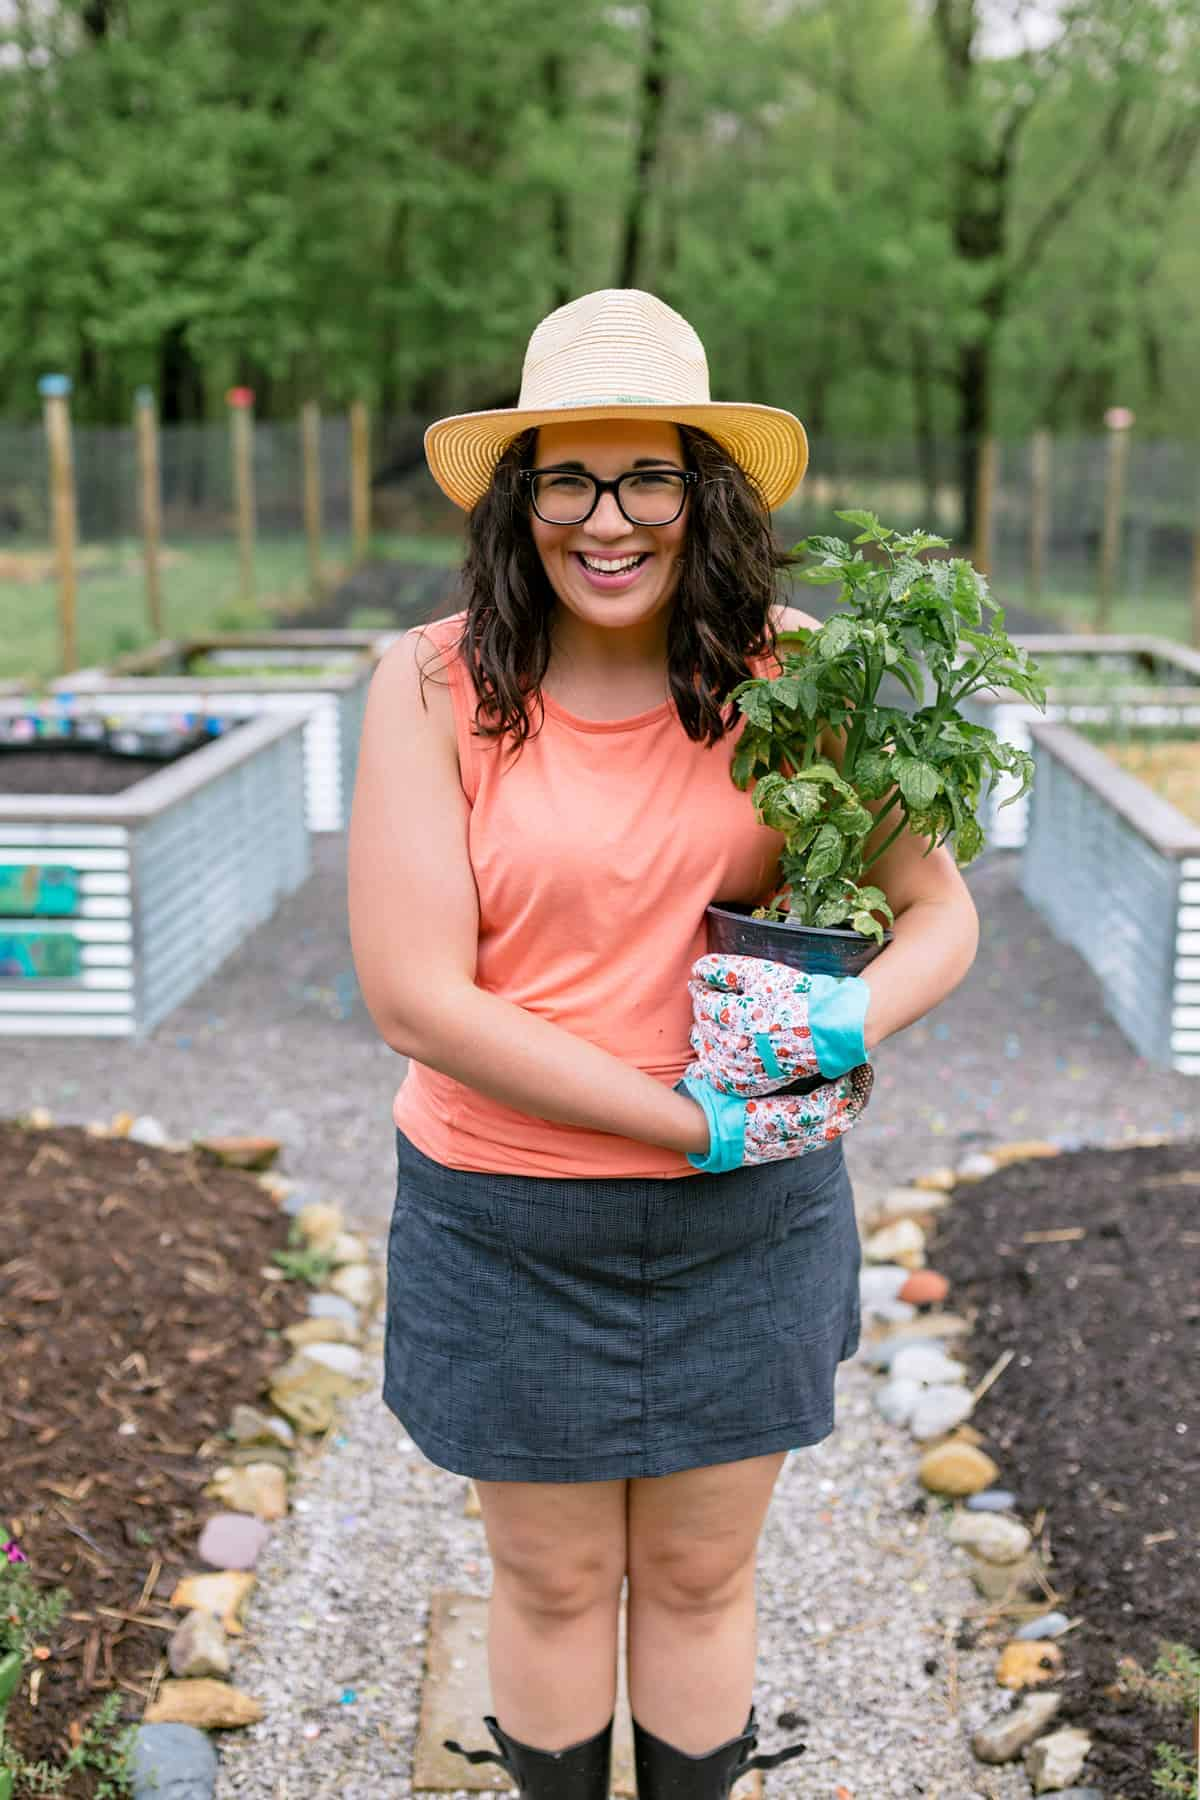 Brunette woman standing in a garden and holding a tomato plant, smiling